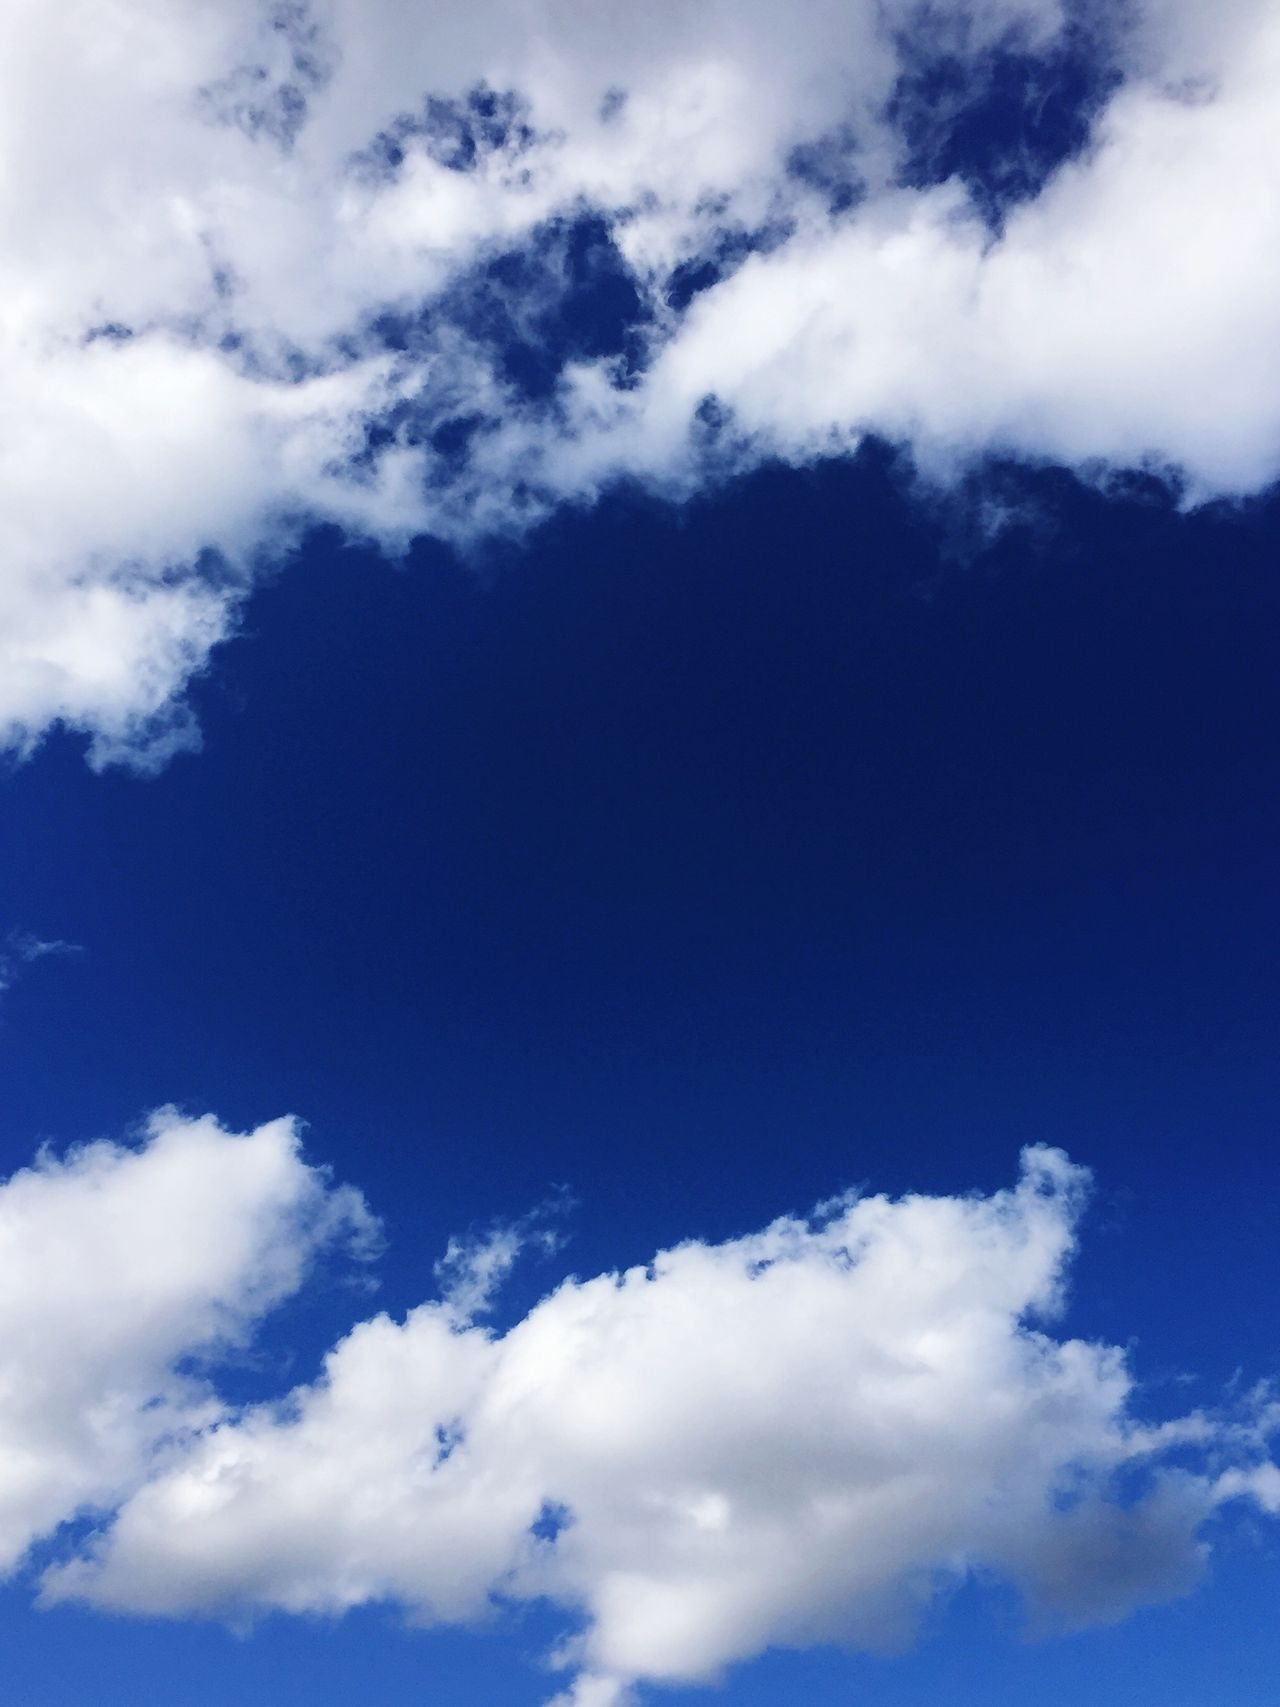 Sky Cloud - Sky Nature Tranquility Scenics Beauty In Nature Himmel Und Wolken Blauer Himmel Wolken Weiße Wolken Und Blauer Himmel Sommer Wetter Blue Backgrounds No People Cloudscape Fluffy Cumulus Cloud Day Sky Only Idyllic Tranquil Scene Heaven Outdoors